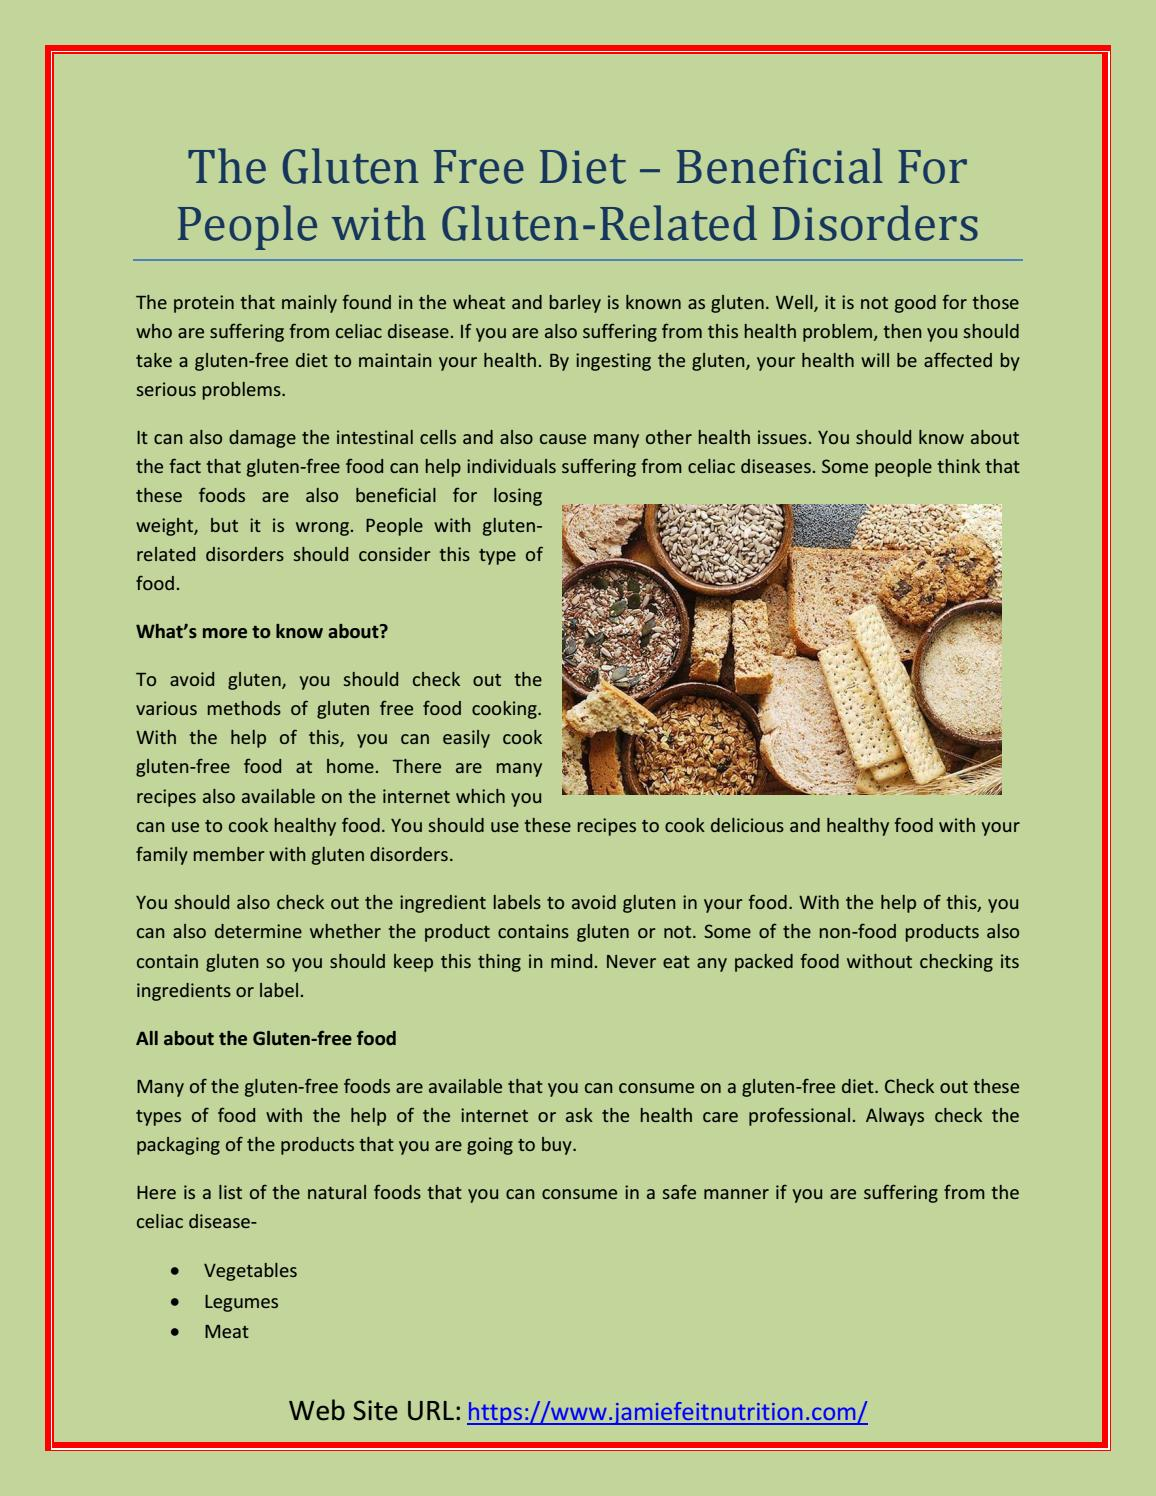 list detriments of gluten-free diets